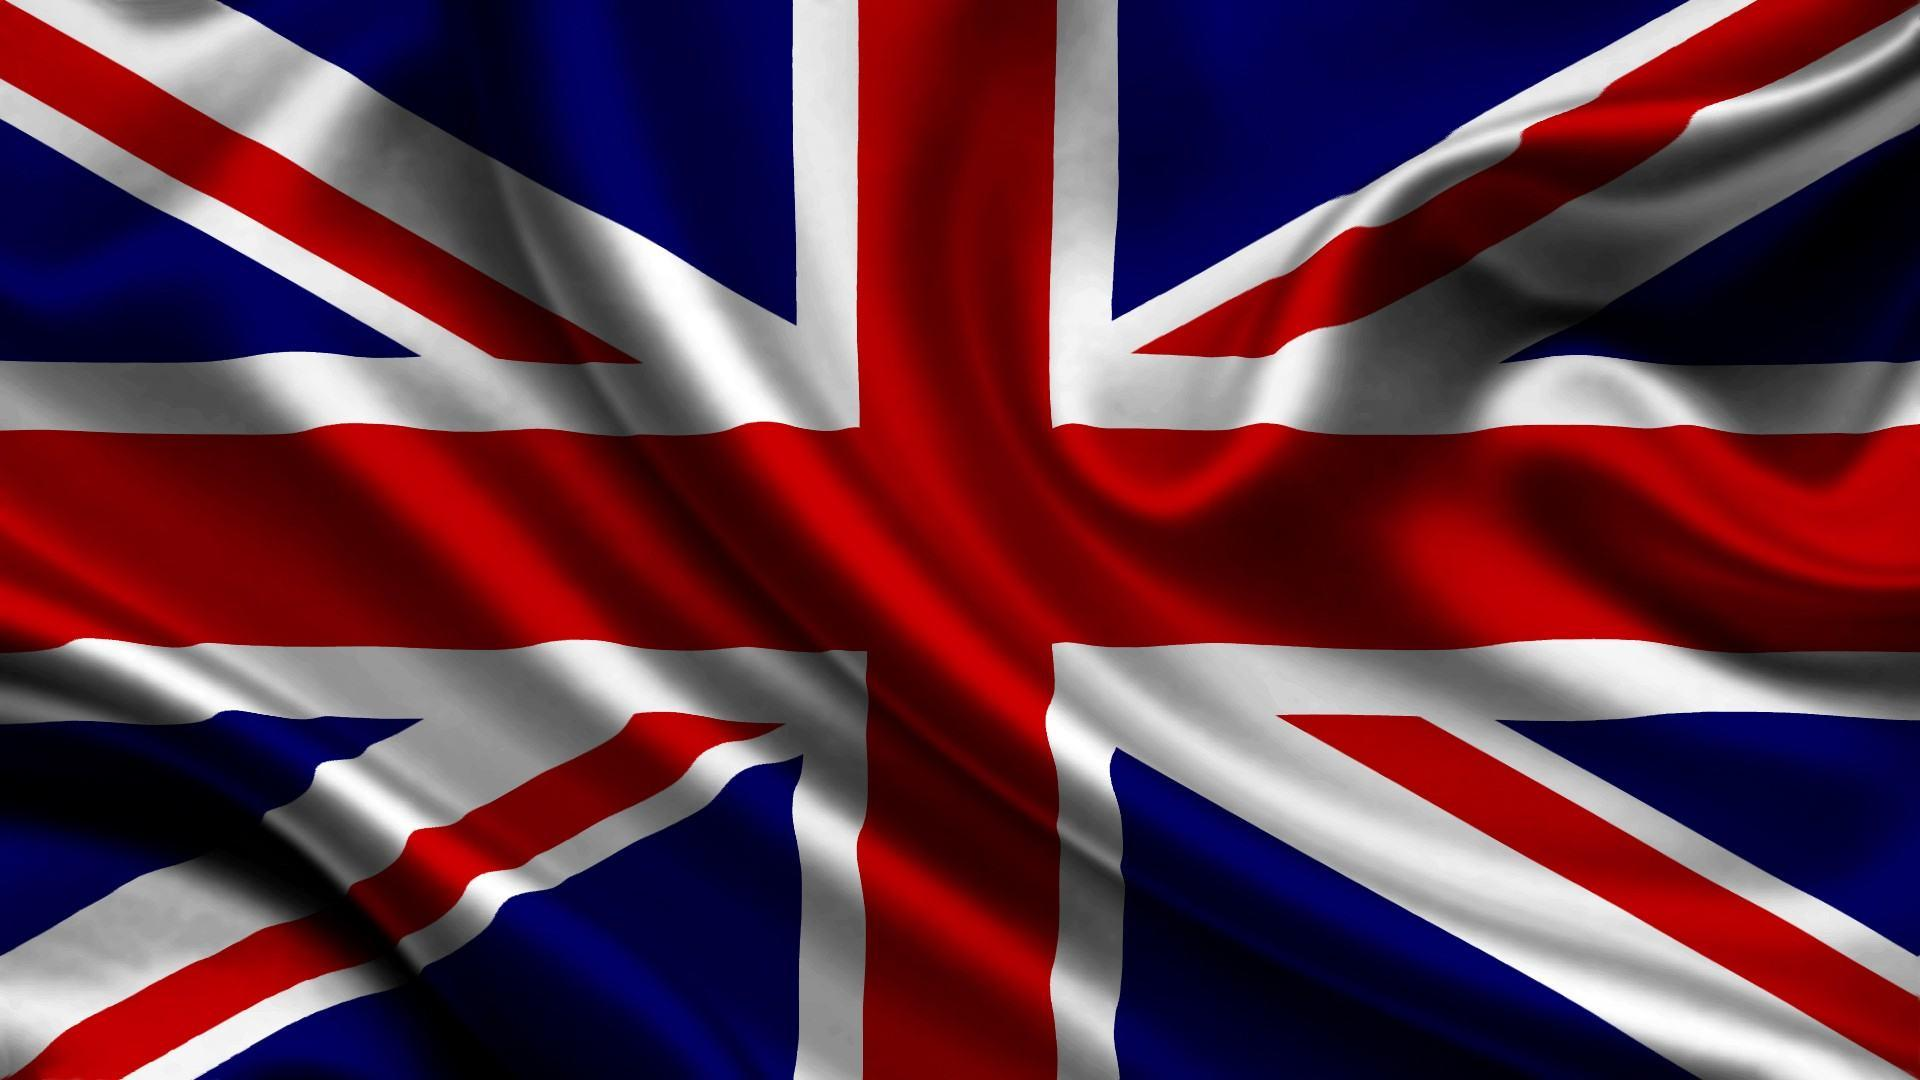 wallpapers backgrounds british - photo #5